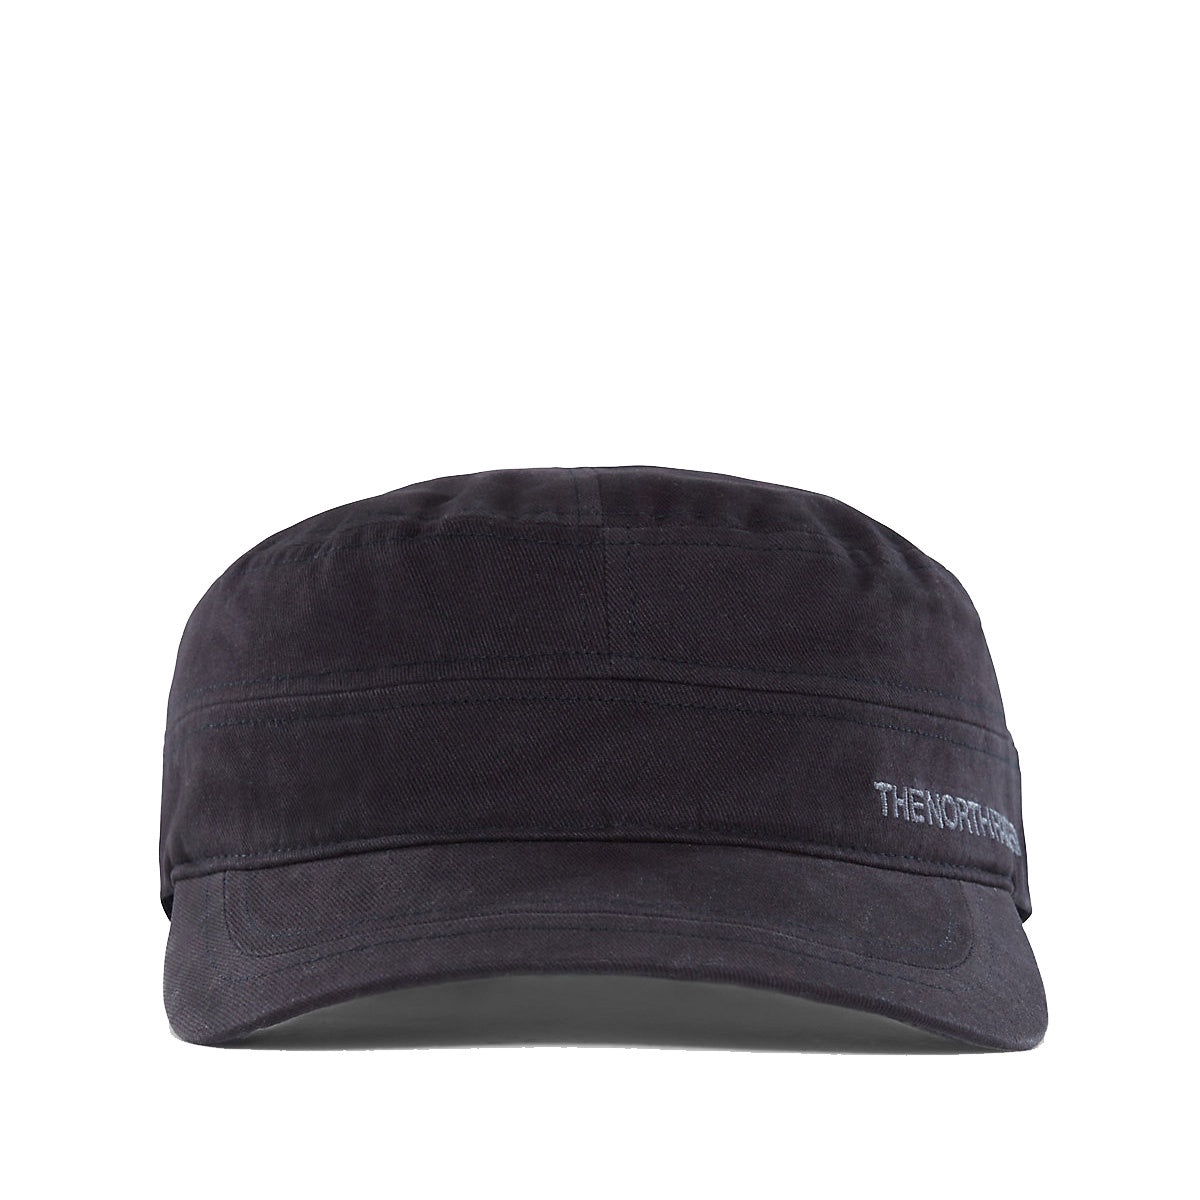 67ec5338f31 The North Face Logo Military Hat - Outdoor Sports